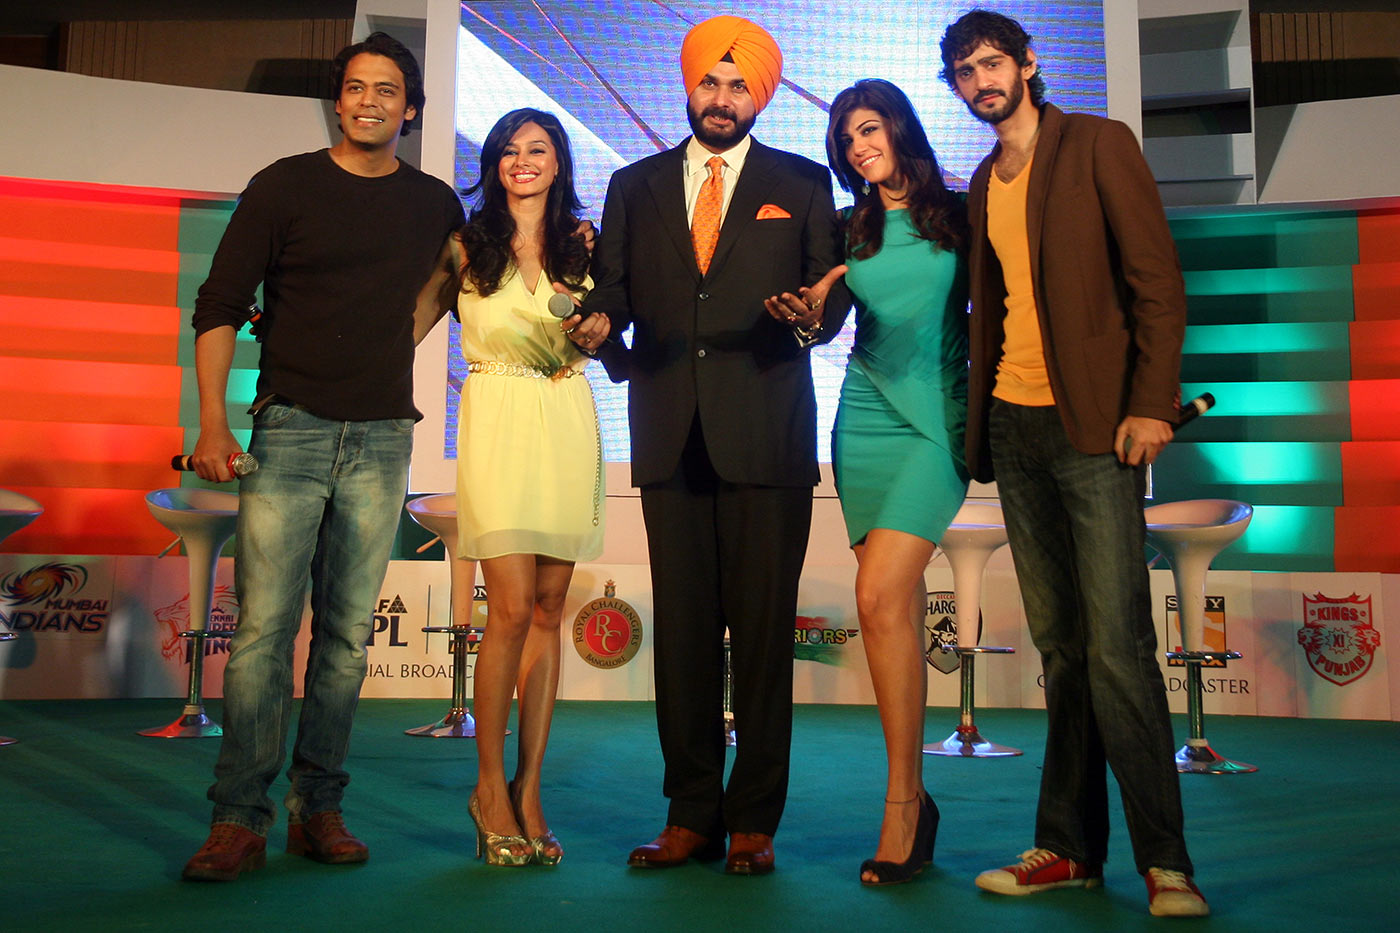 The <i>Extraaa Innings</i> crew. Gaurav Kapur is first from right